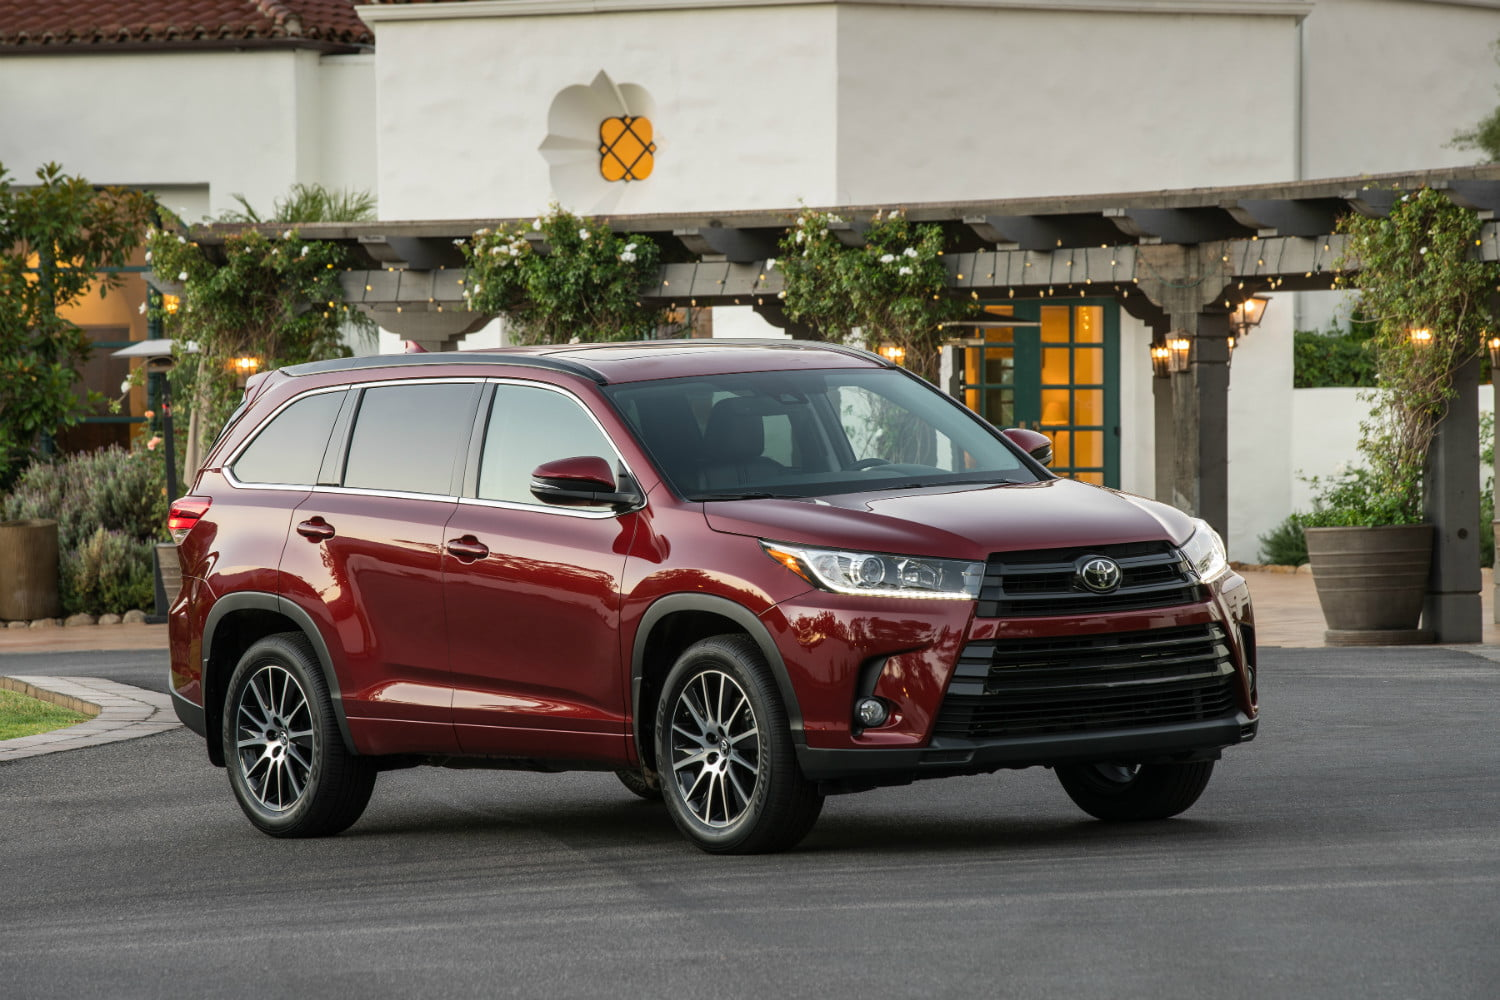 2018 Toyota Highlander Release Date Prices Specs Features Digital Trends